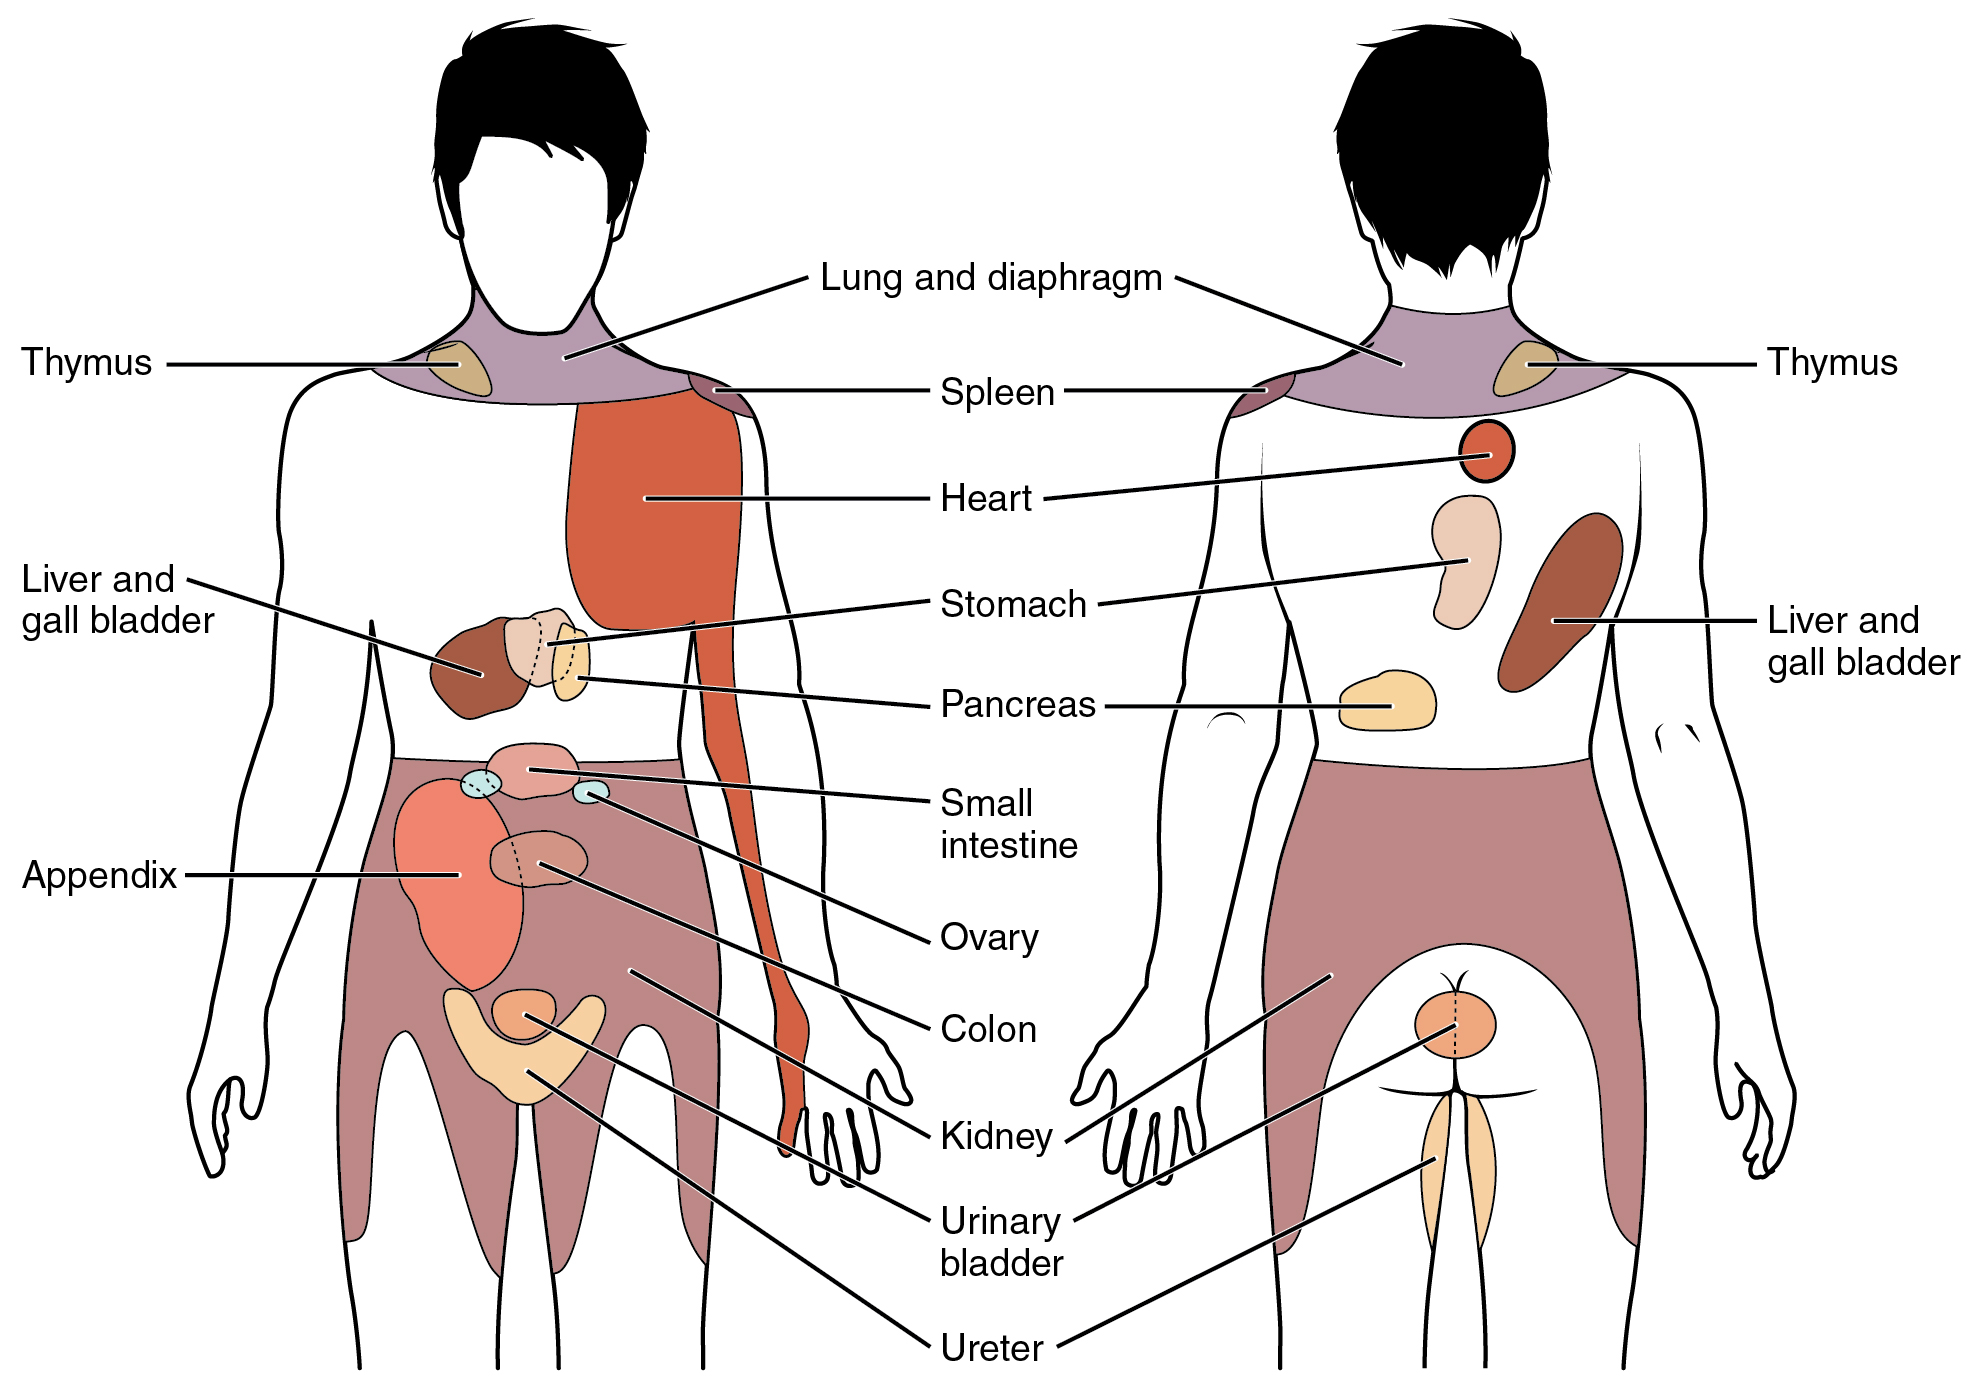 The figure shows the different organs in the human body. The left panel shows the front view, and the right panel shows the back view.